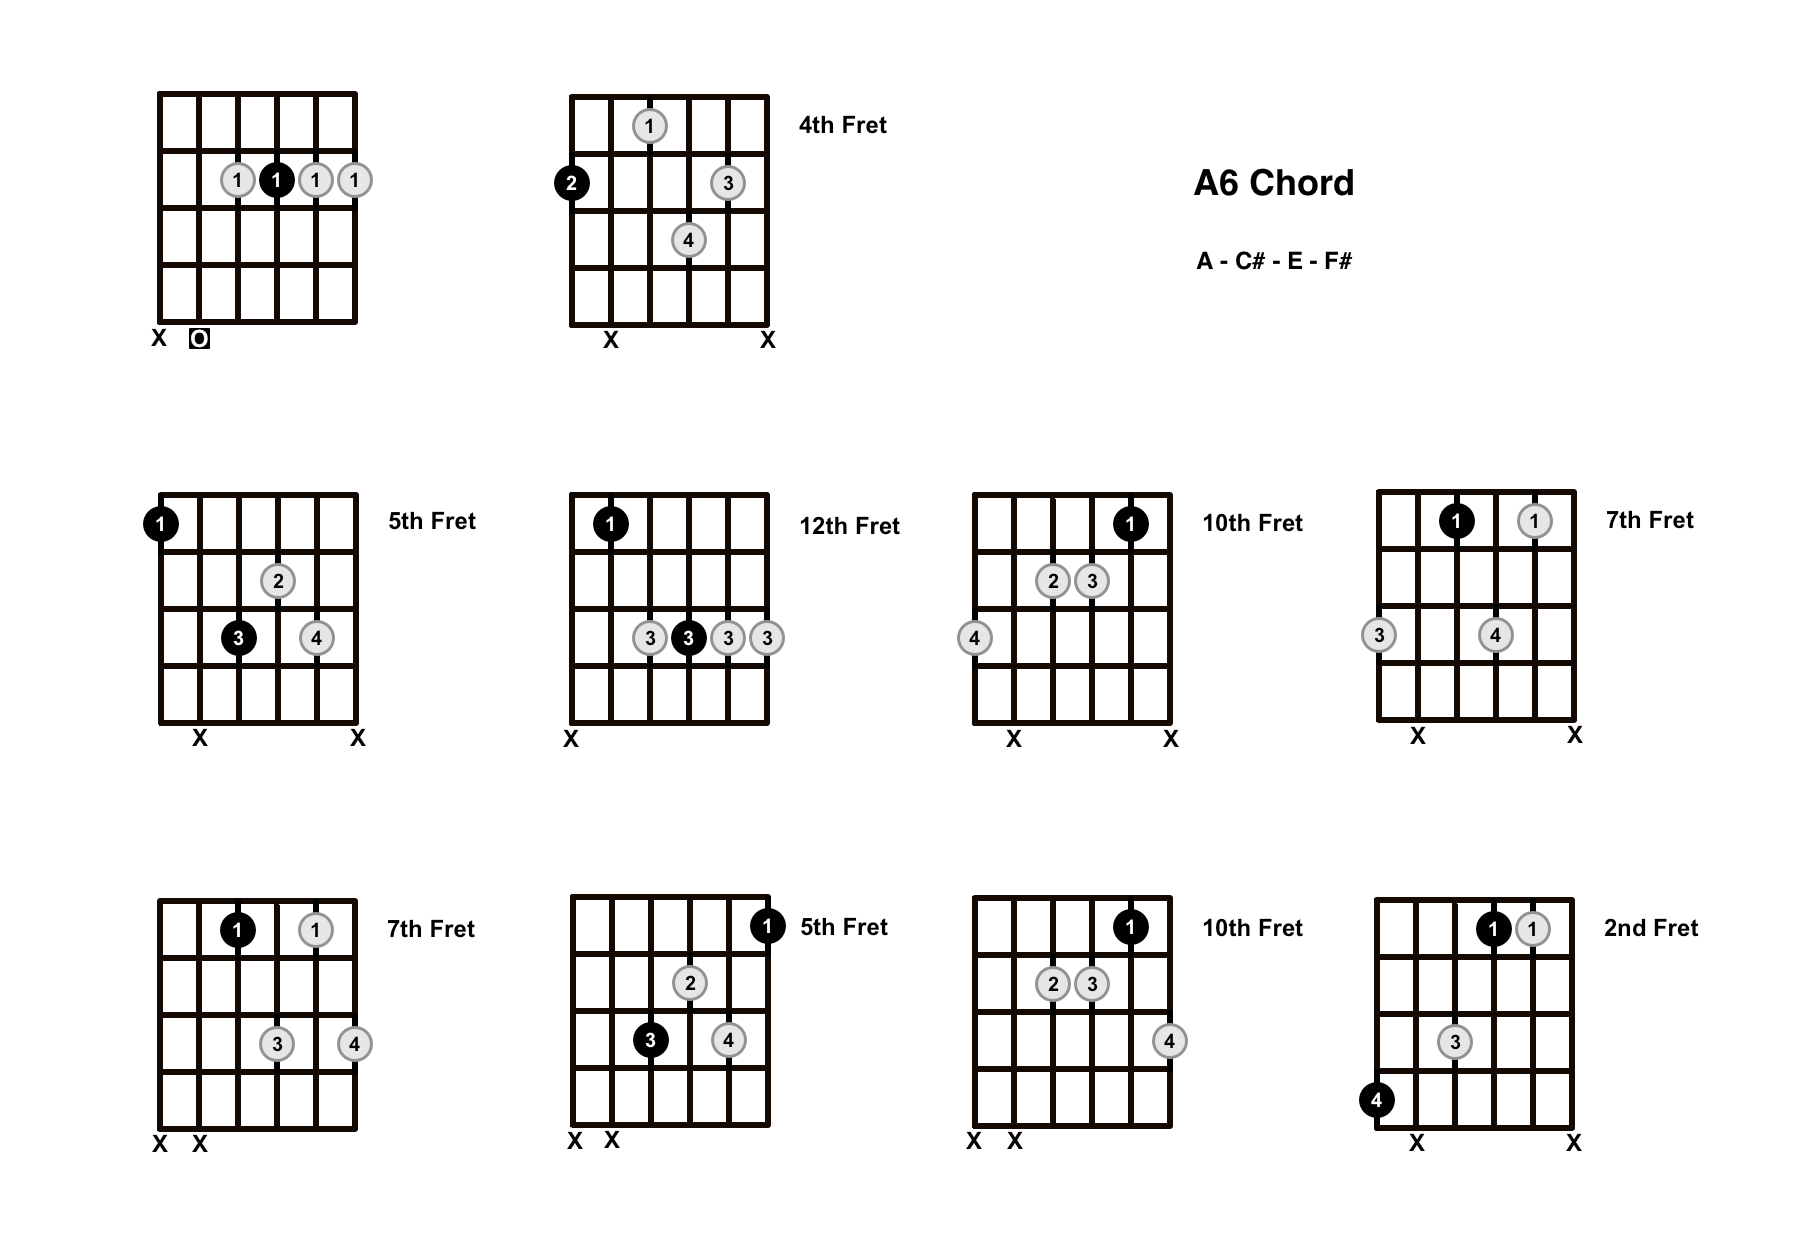 A6 Chord On The Guitar (A Major 6) – Diagrams, Finger Positions and Theory